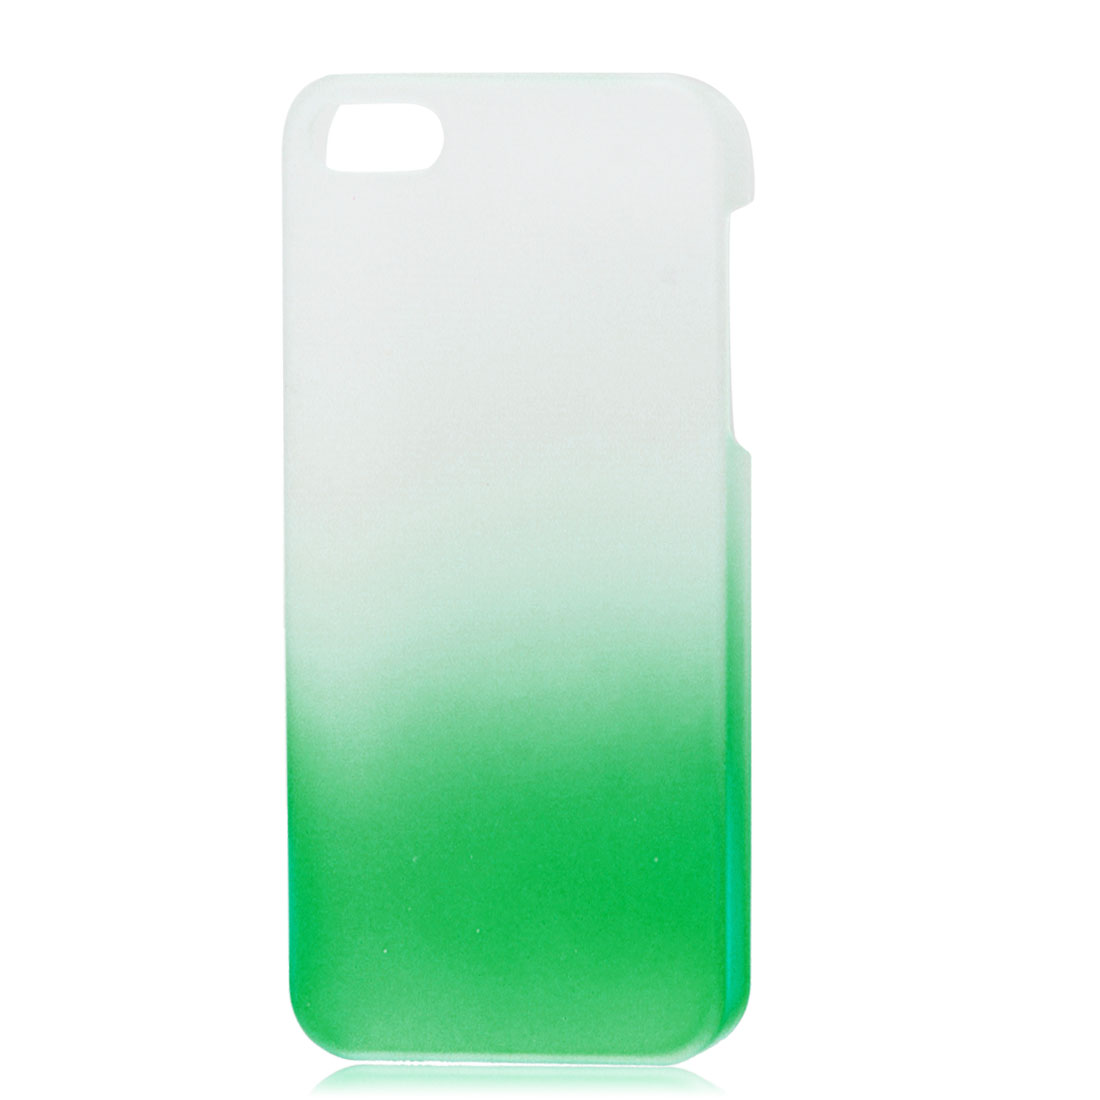 Gradient Green Translucent Hard Plastic Protective Case Cover for iPhone 5 5G